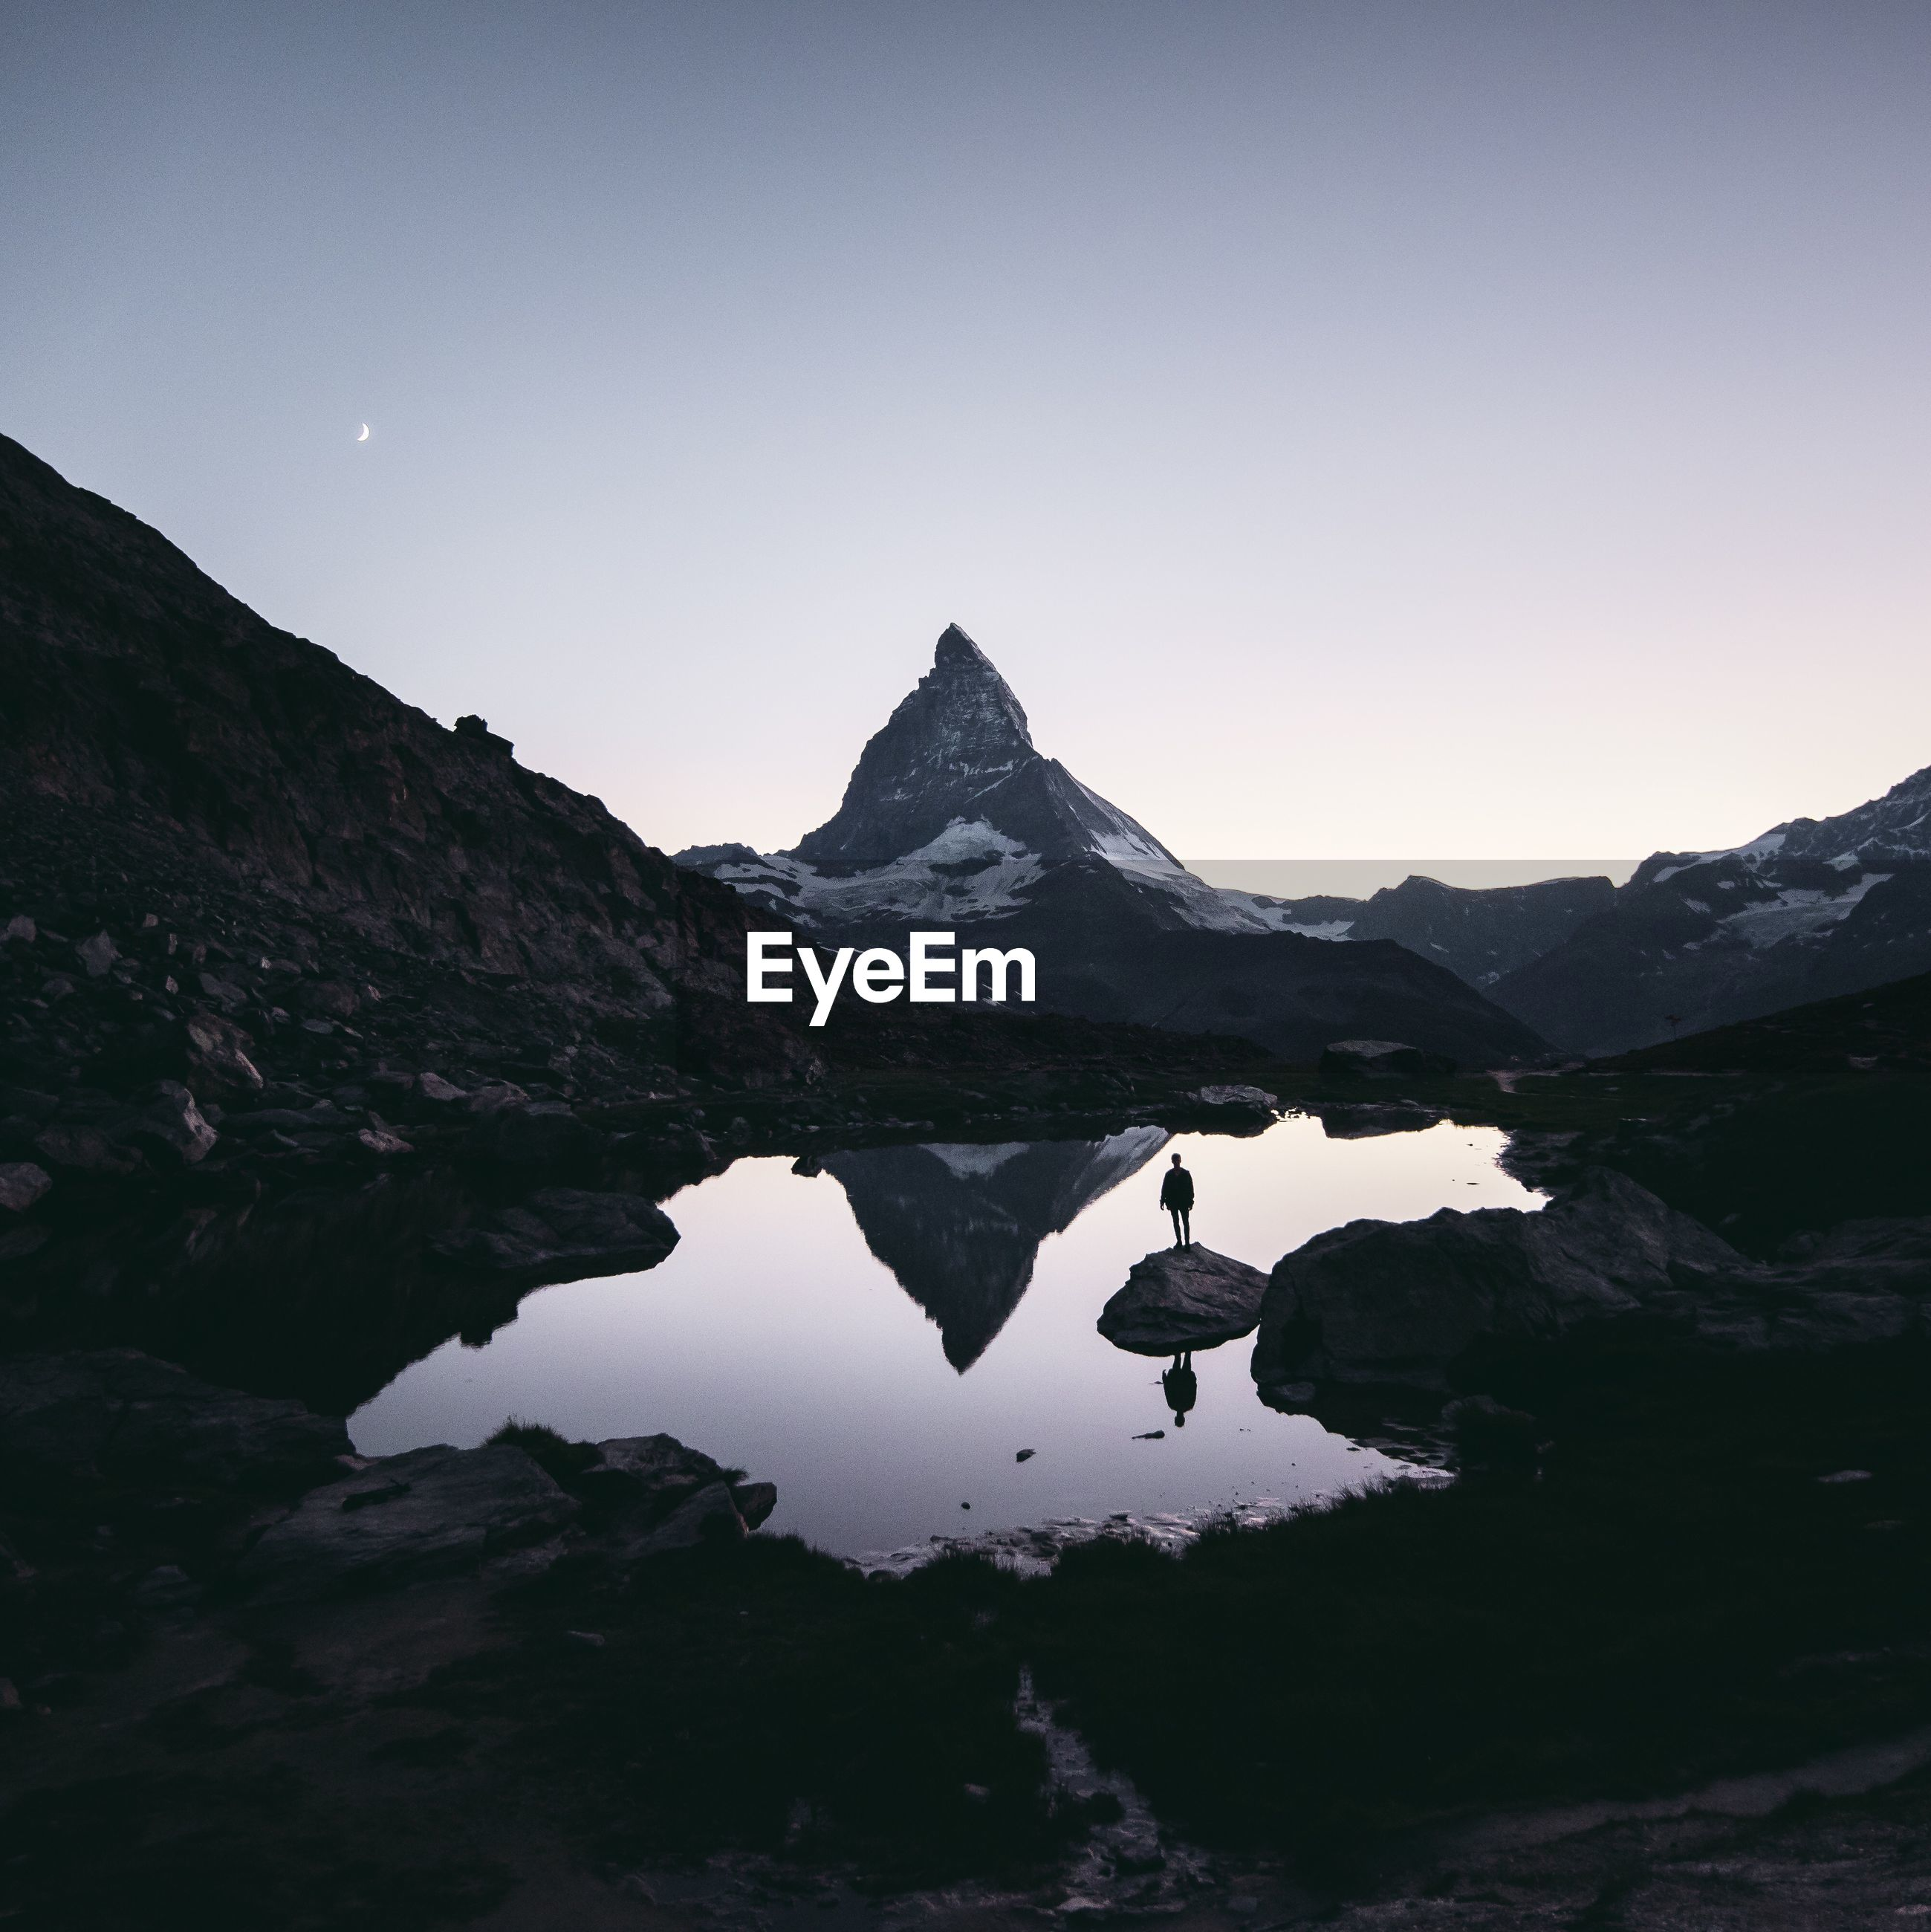 mountain, reflection, landscape, lake, mountain range, beauty in nature, water, nature, scenics, adventure, sky, outdoors, mountain peak, night, people, one person, star - space